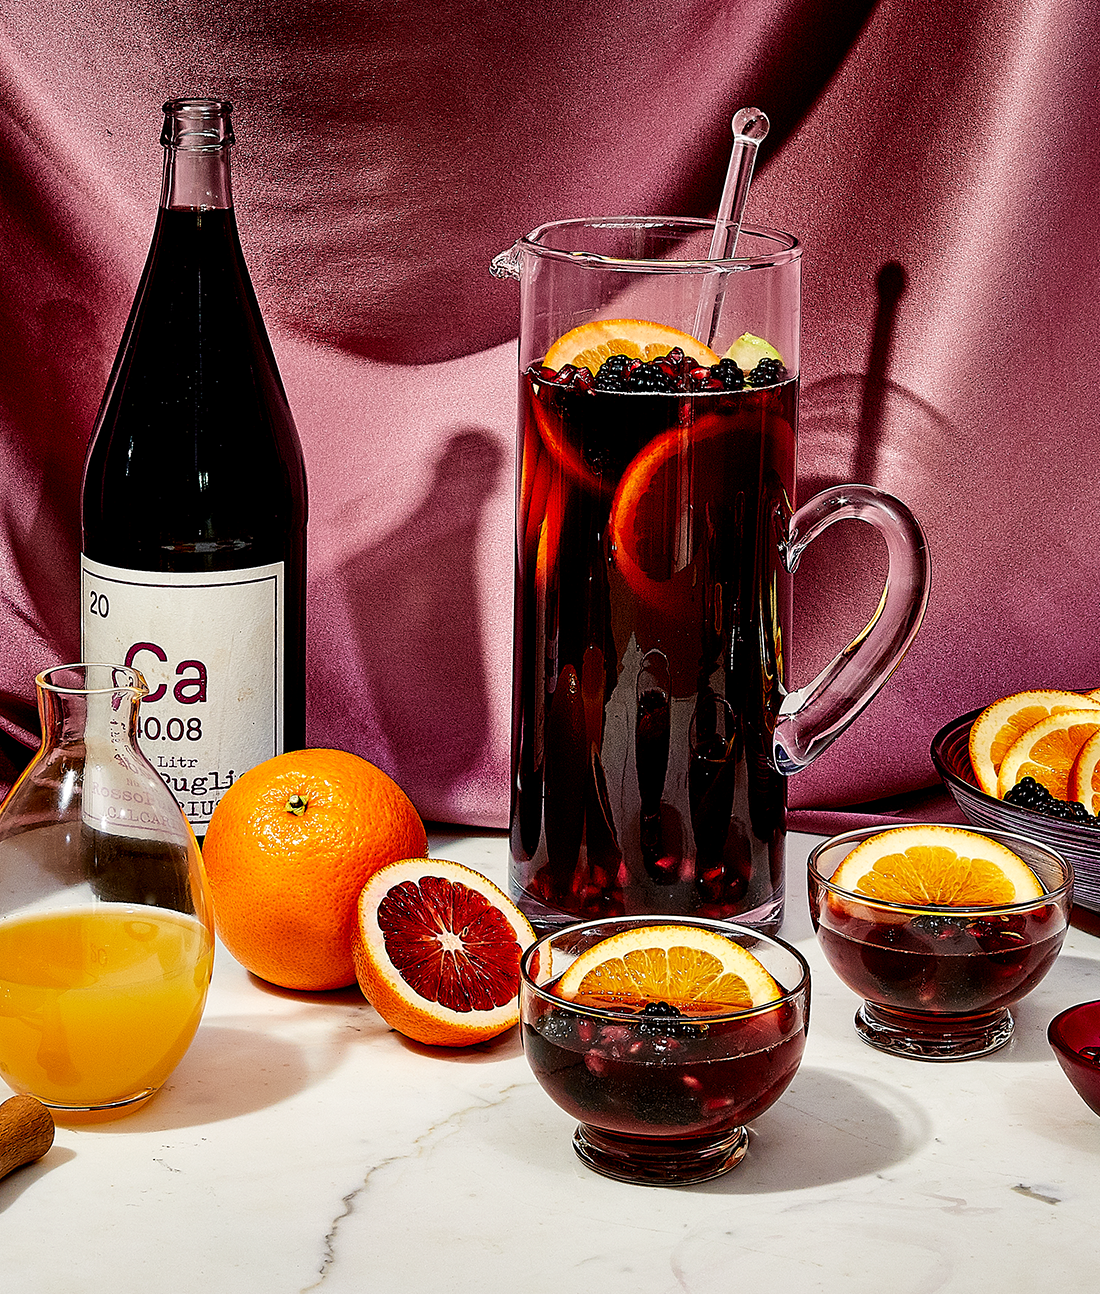 How to Make a Pitcher of Sangria